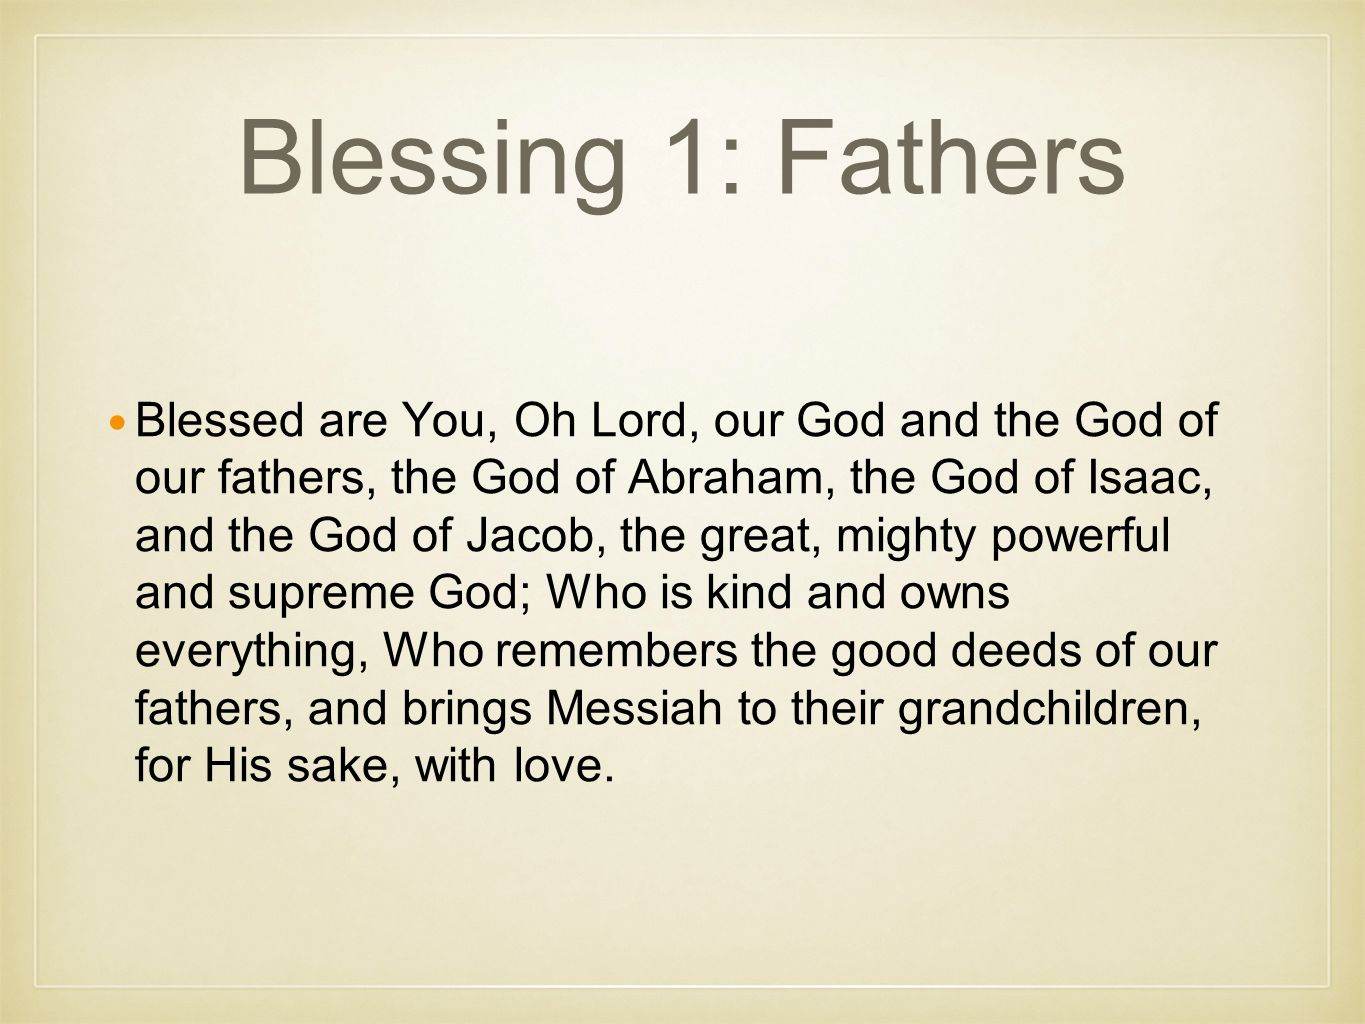 Blessing 1: Fathers Blessed are You, Oh Lord, our God and the God of our fathers, the God of Abraham, the God of Isaac, and the God of Jacob, the great, mighty powerful and supreme God; Who is kind and owns everything, Who remembers the good deeds of our fathers, and brings Messiah to their grandchildren, for His sake, with love.